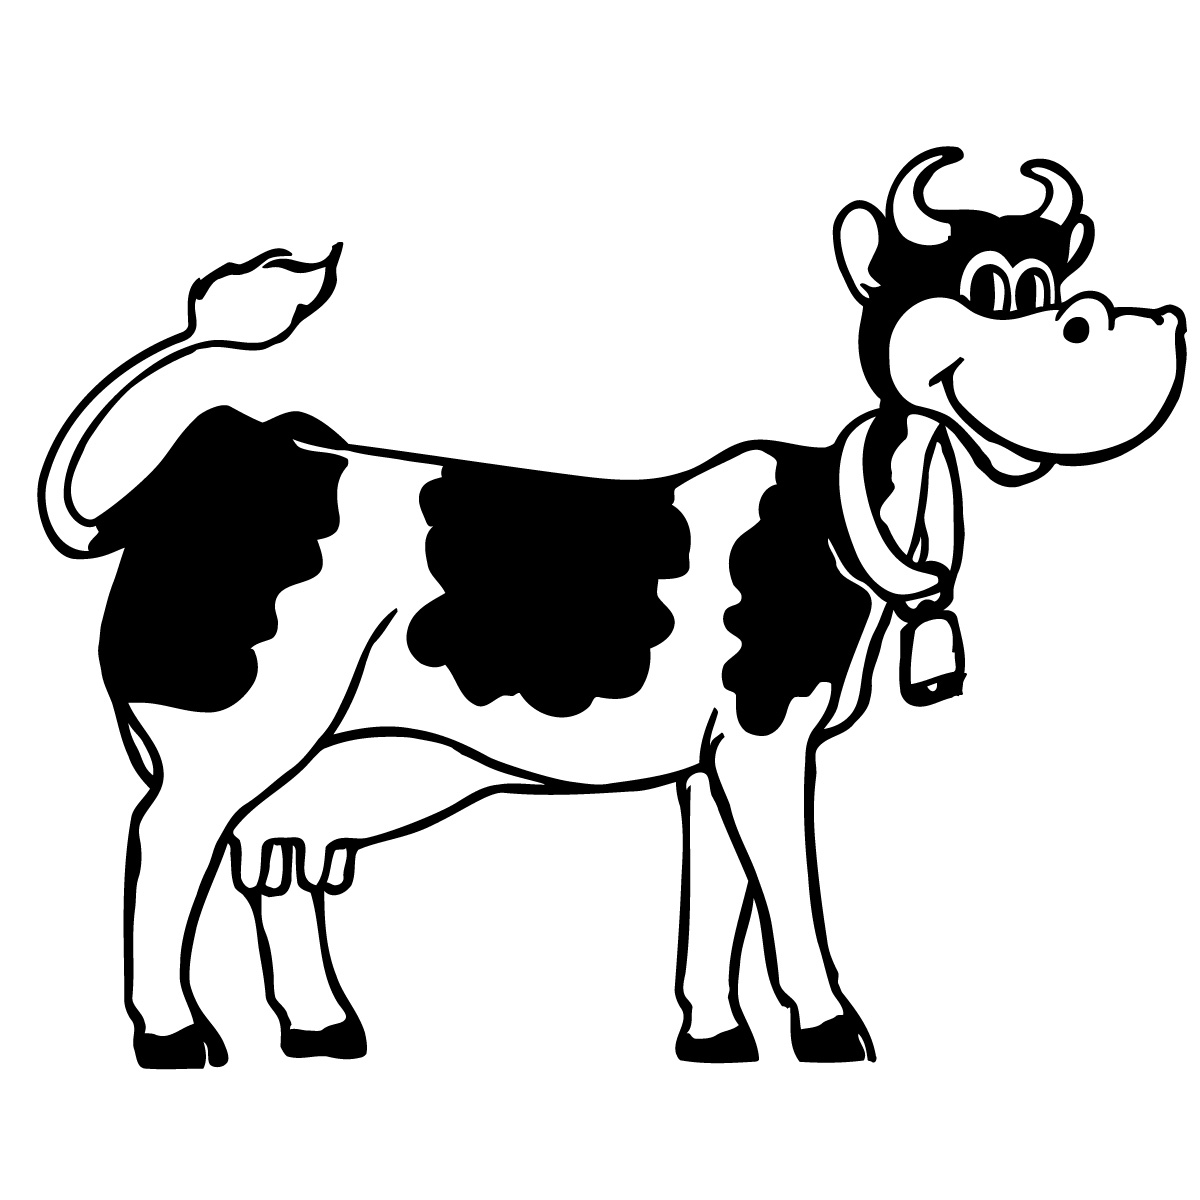 Cow Clipart Black And White | Clipart Panda - Free Clipart ...